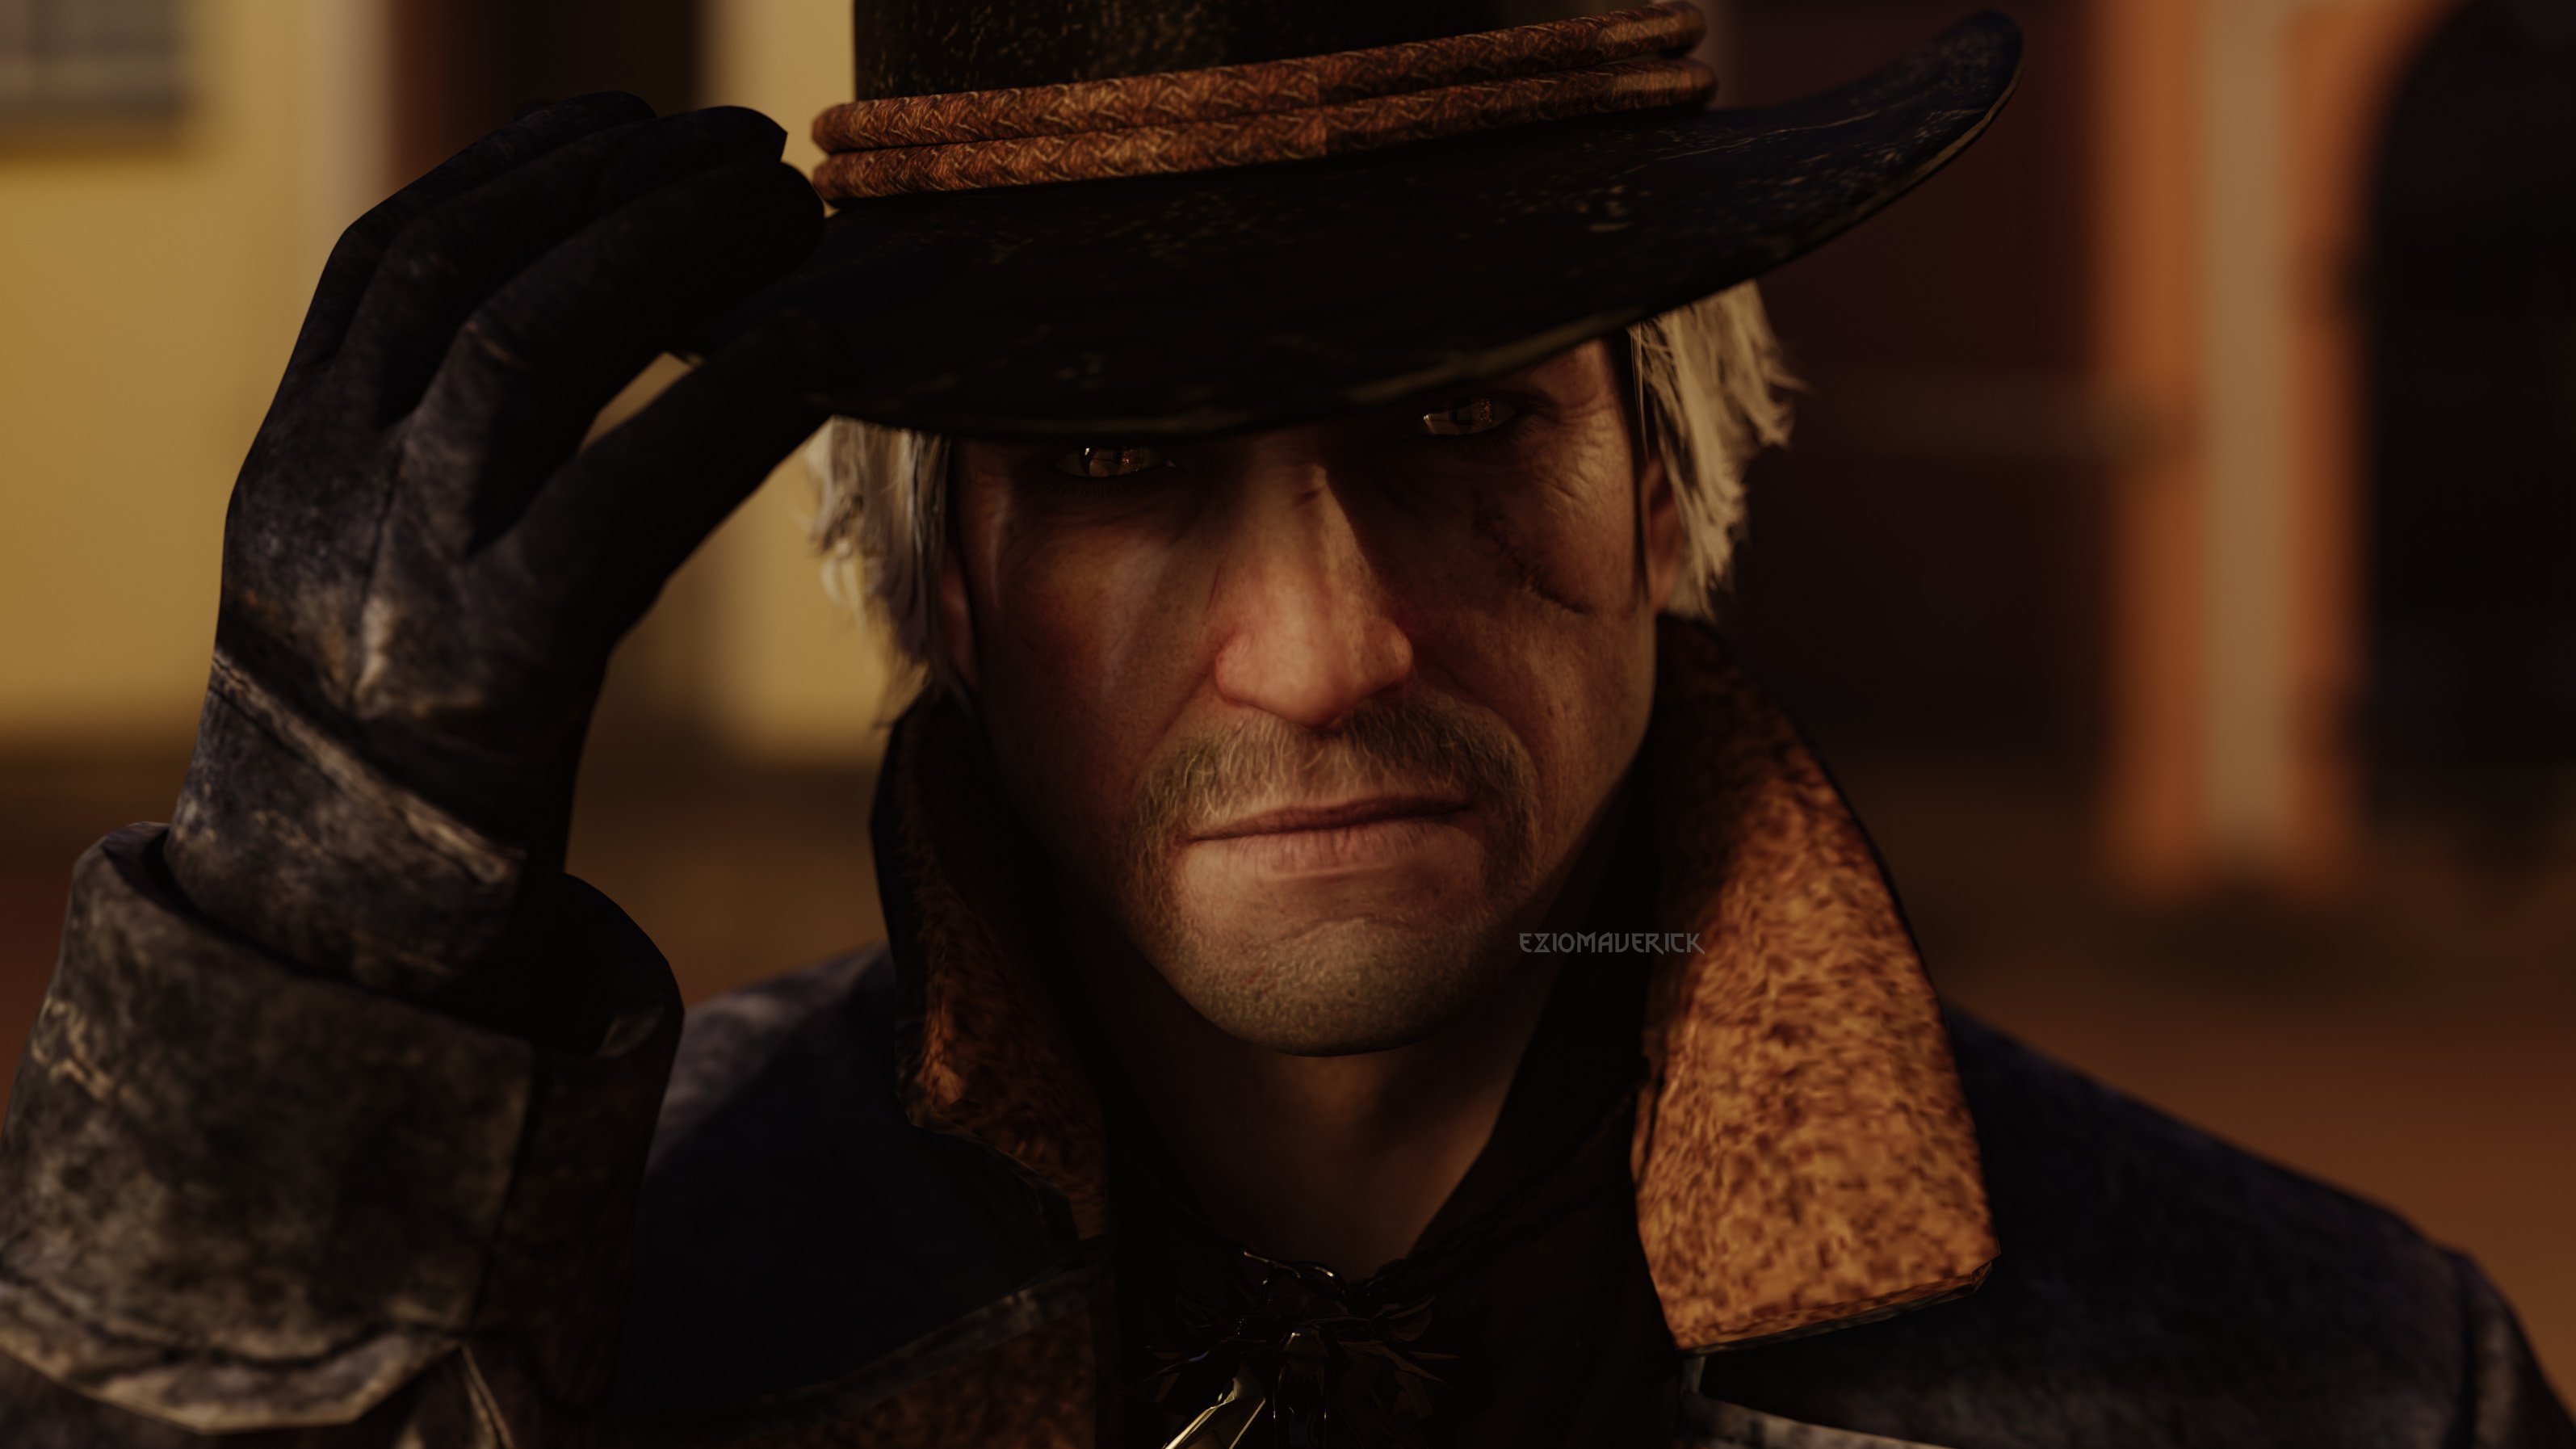 Oh my - Witcher 3: Wild Hunt, the